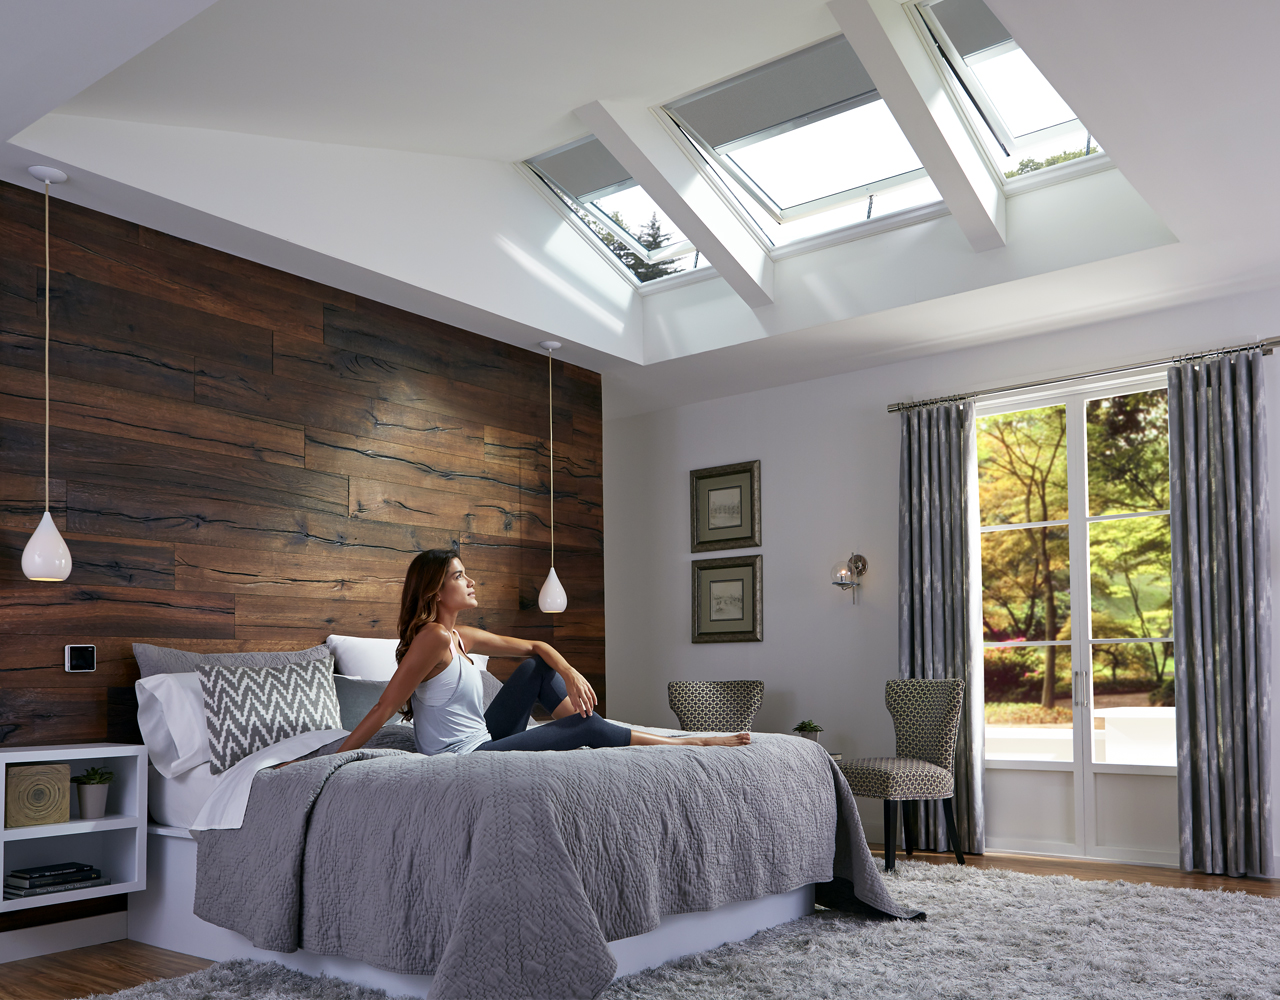 Bedroom Skylight Bedroom Skylight Home Design